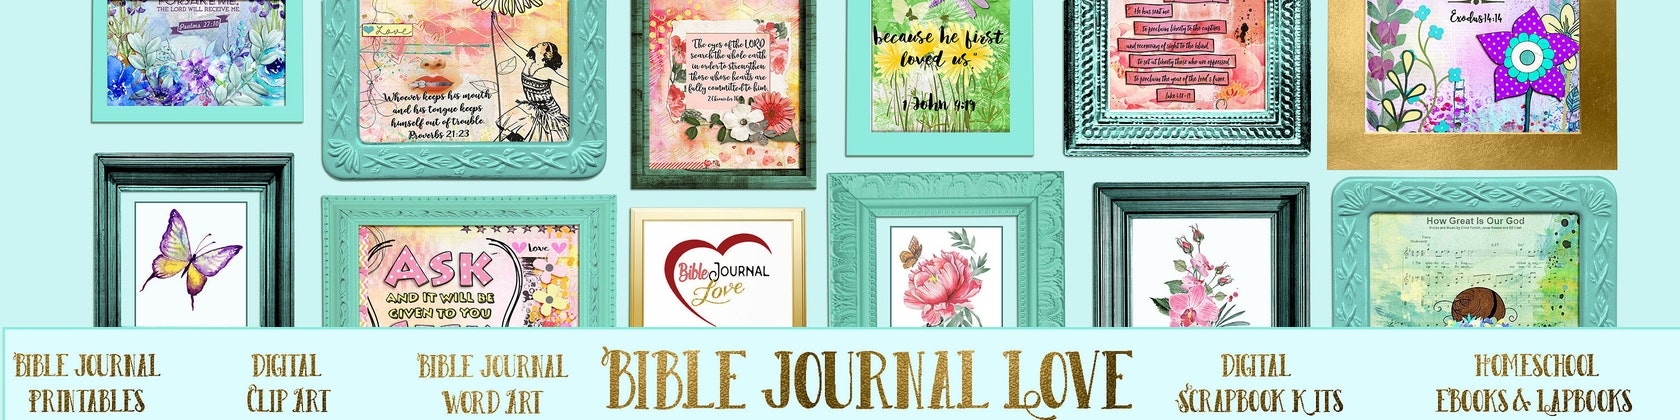 Facebook group httpbitbiblejournallove by biblejournallove biblejournallove fandeluxe Images